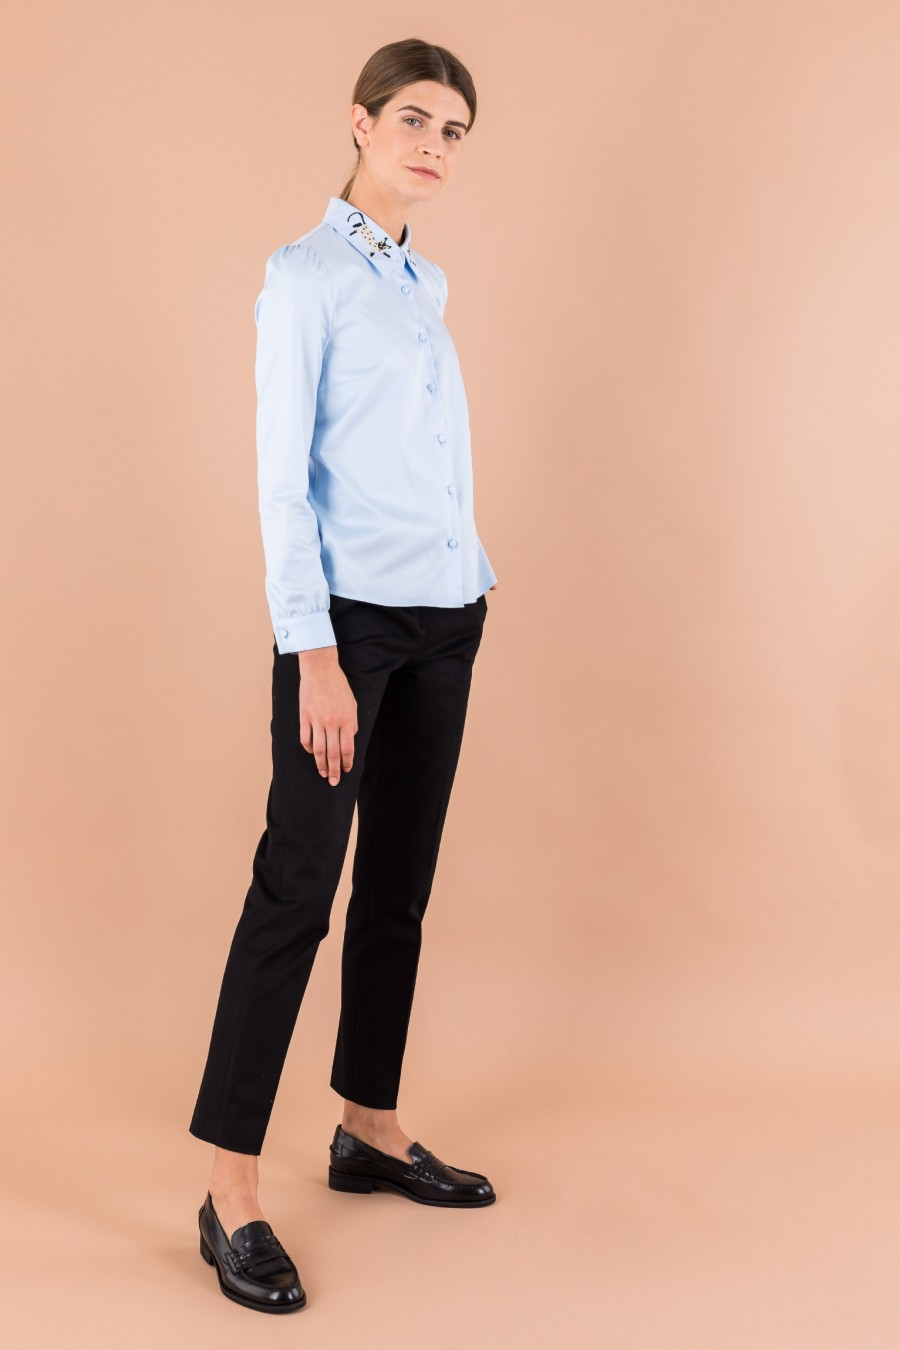 Light blue shirt with cat collar